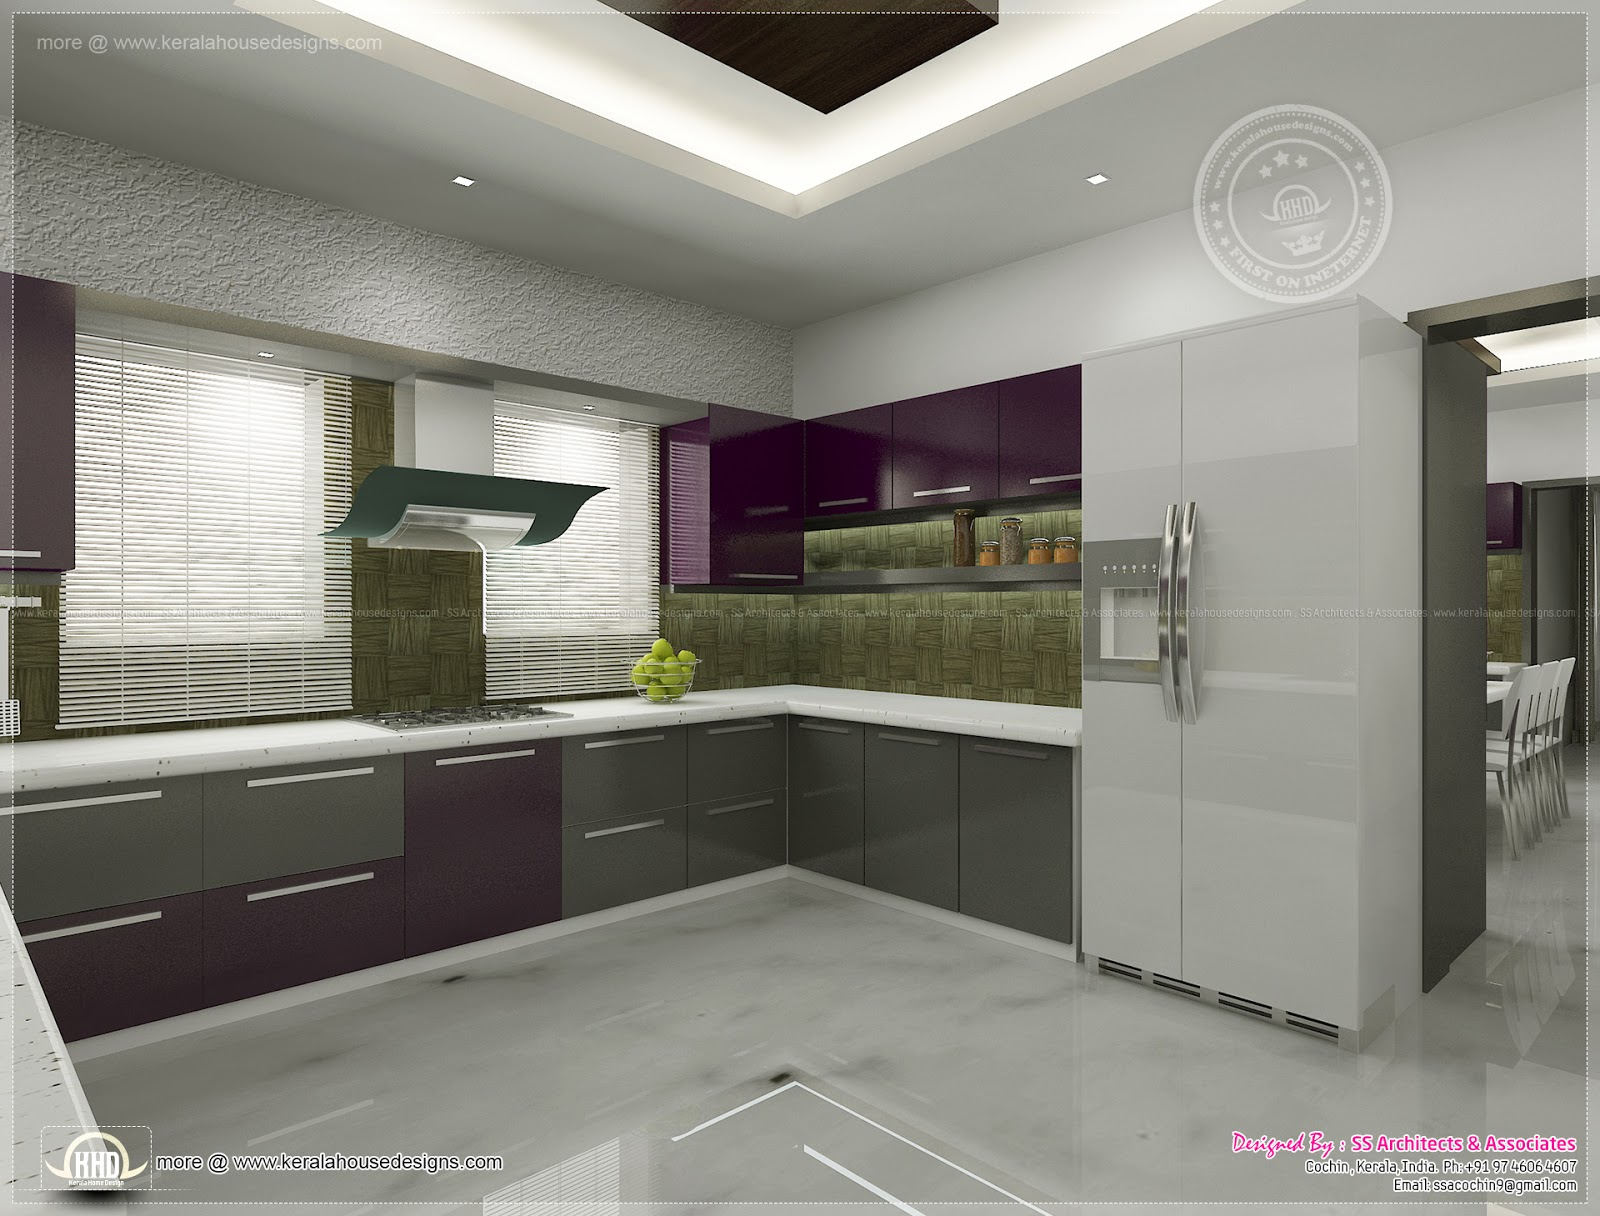 Kitchen interior views by ss architects cochin home for Interior designs idea